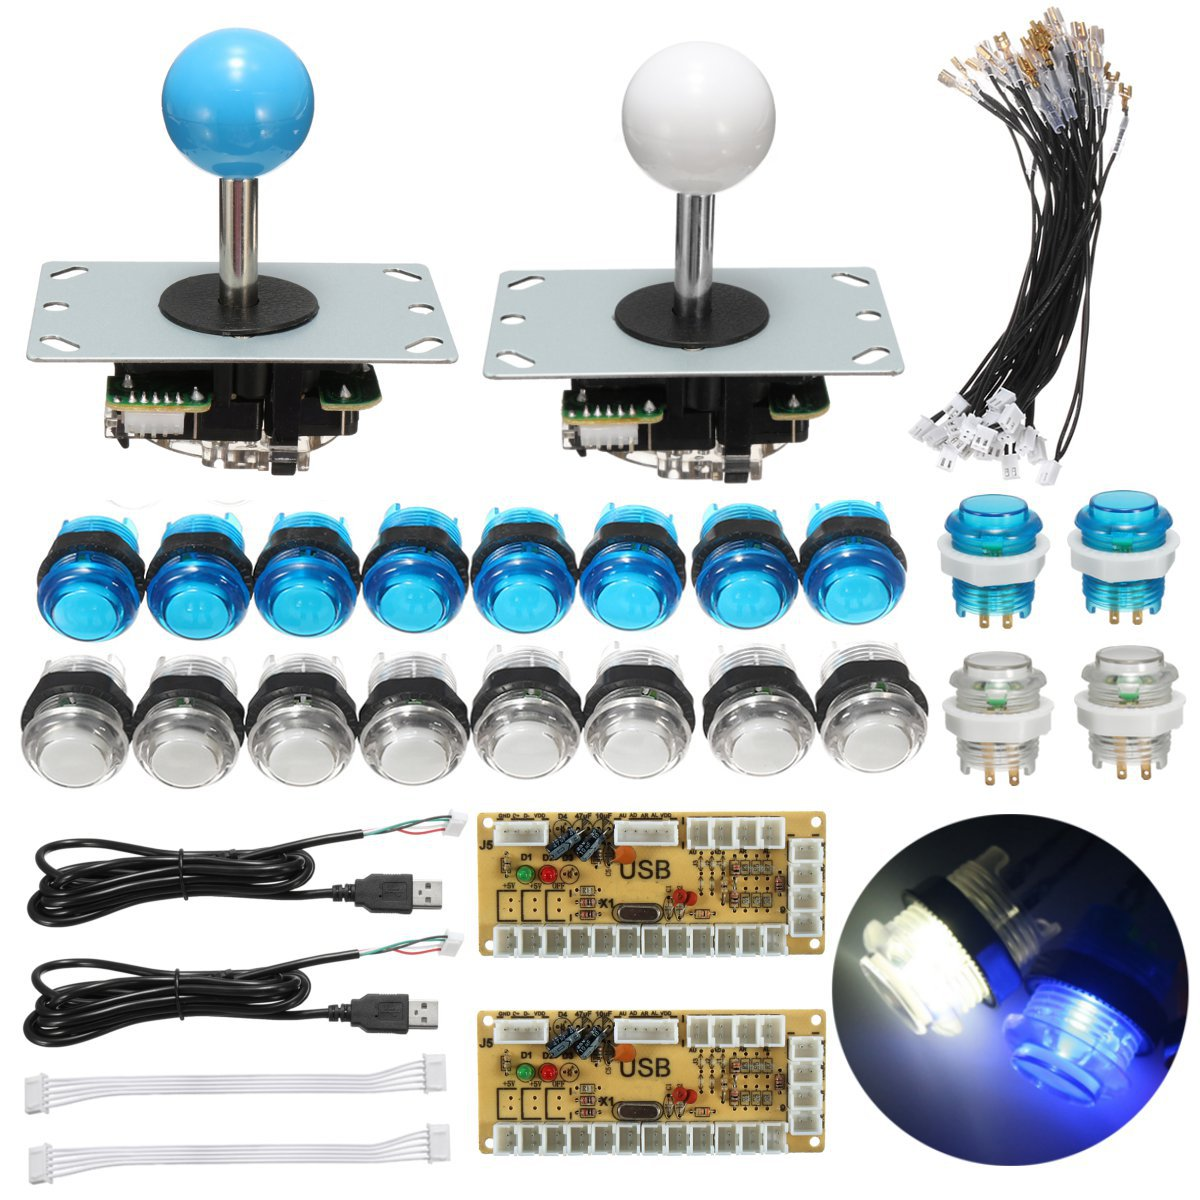 Zero Delay Joystick Arcade DIY Kit LED Push Button+Joystick+USB Encoder+Wire Harness USB Controller For Arcade Mame Arcade Game